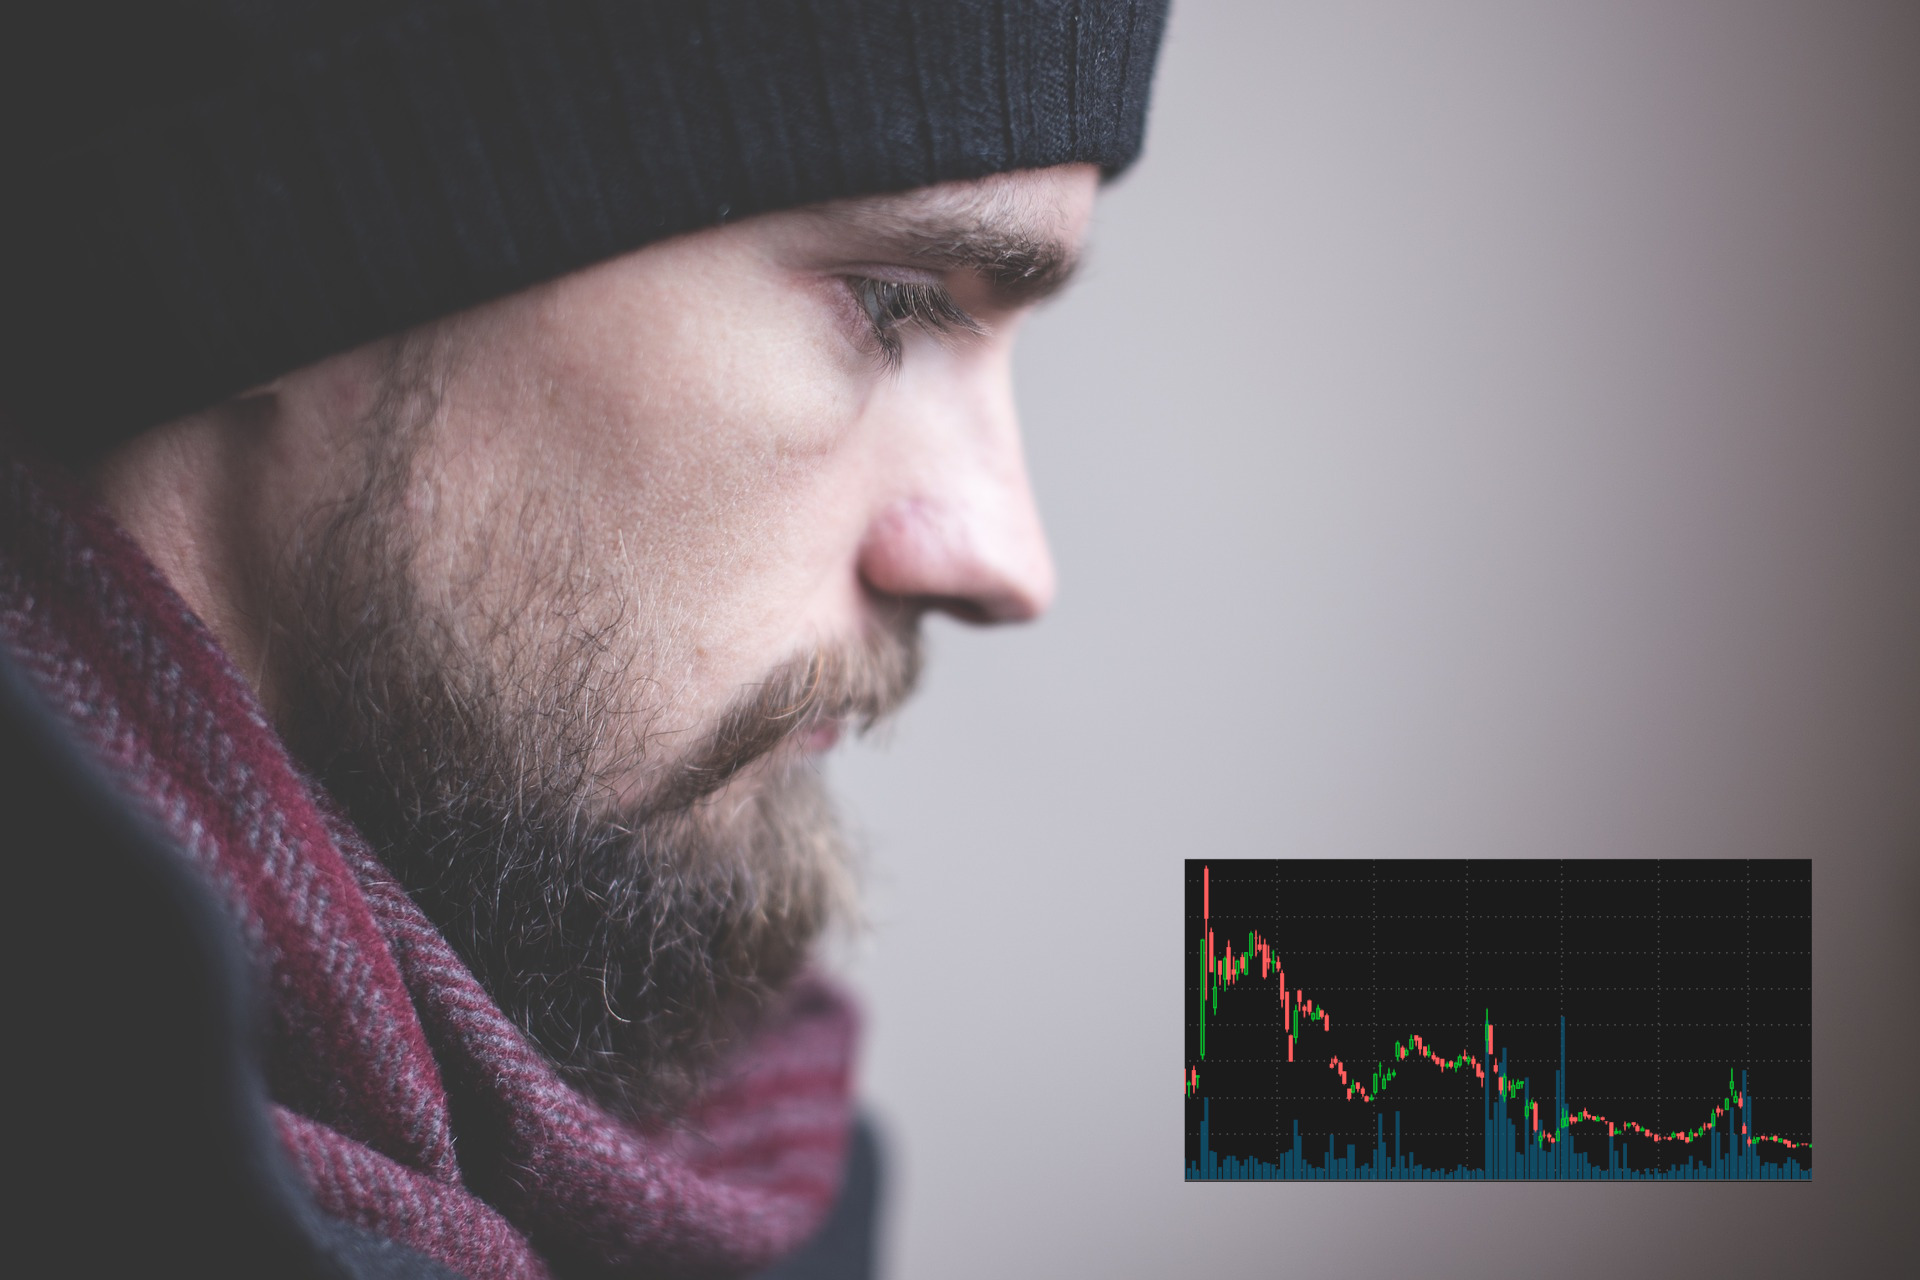 Lose money day trading